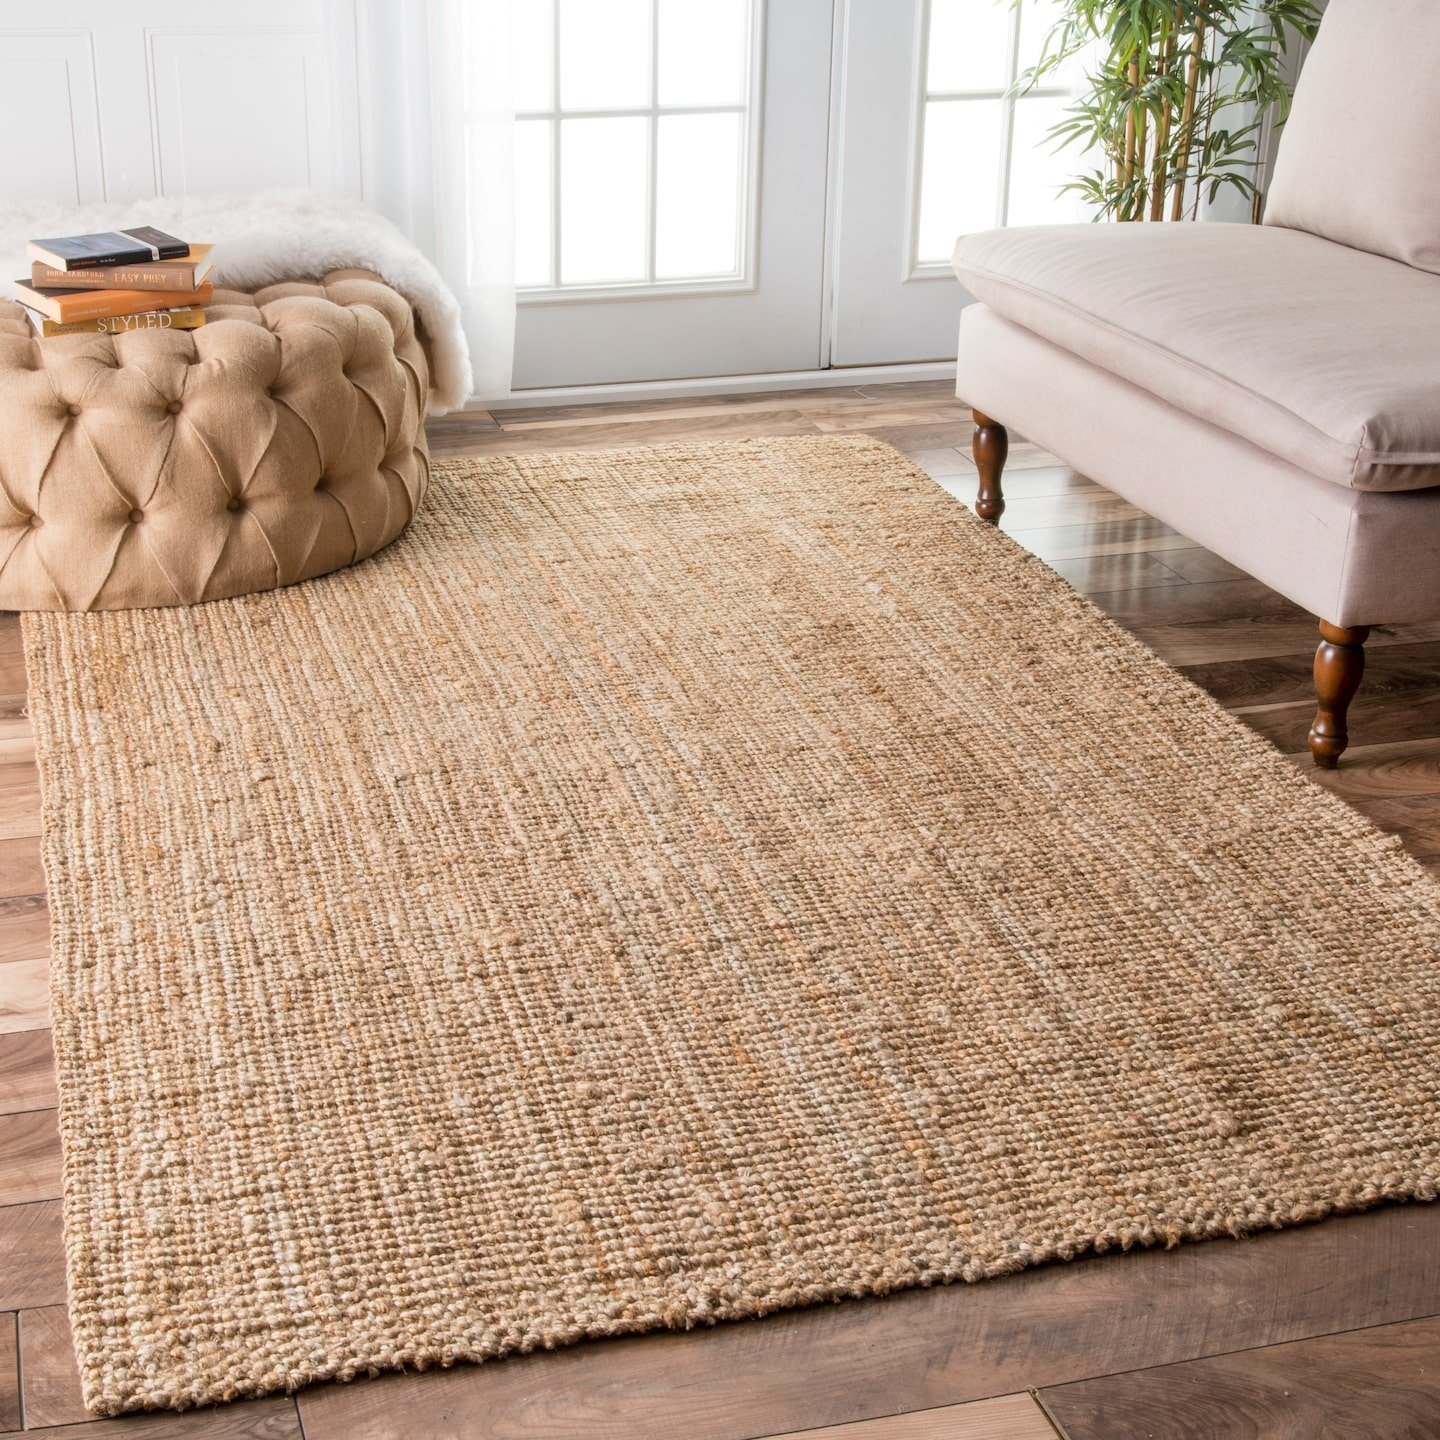 nuLOOM Handwoven Jute Ribbed Solid Area Rugs, 4' x 6', Natural by nuLOOM (Image #2)